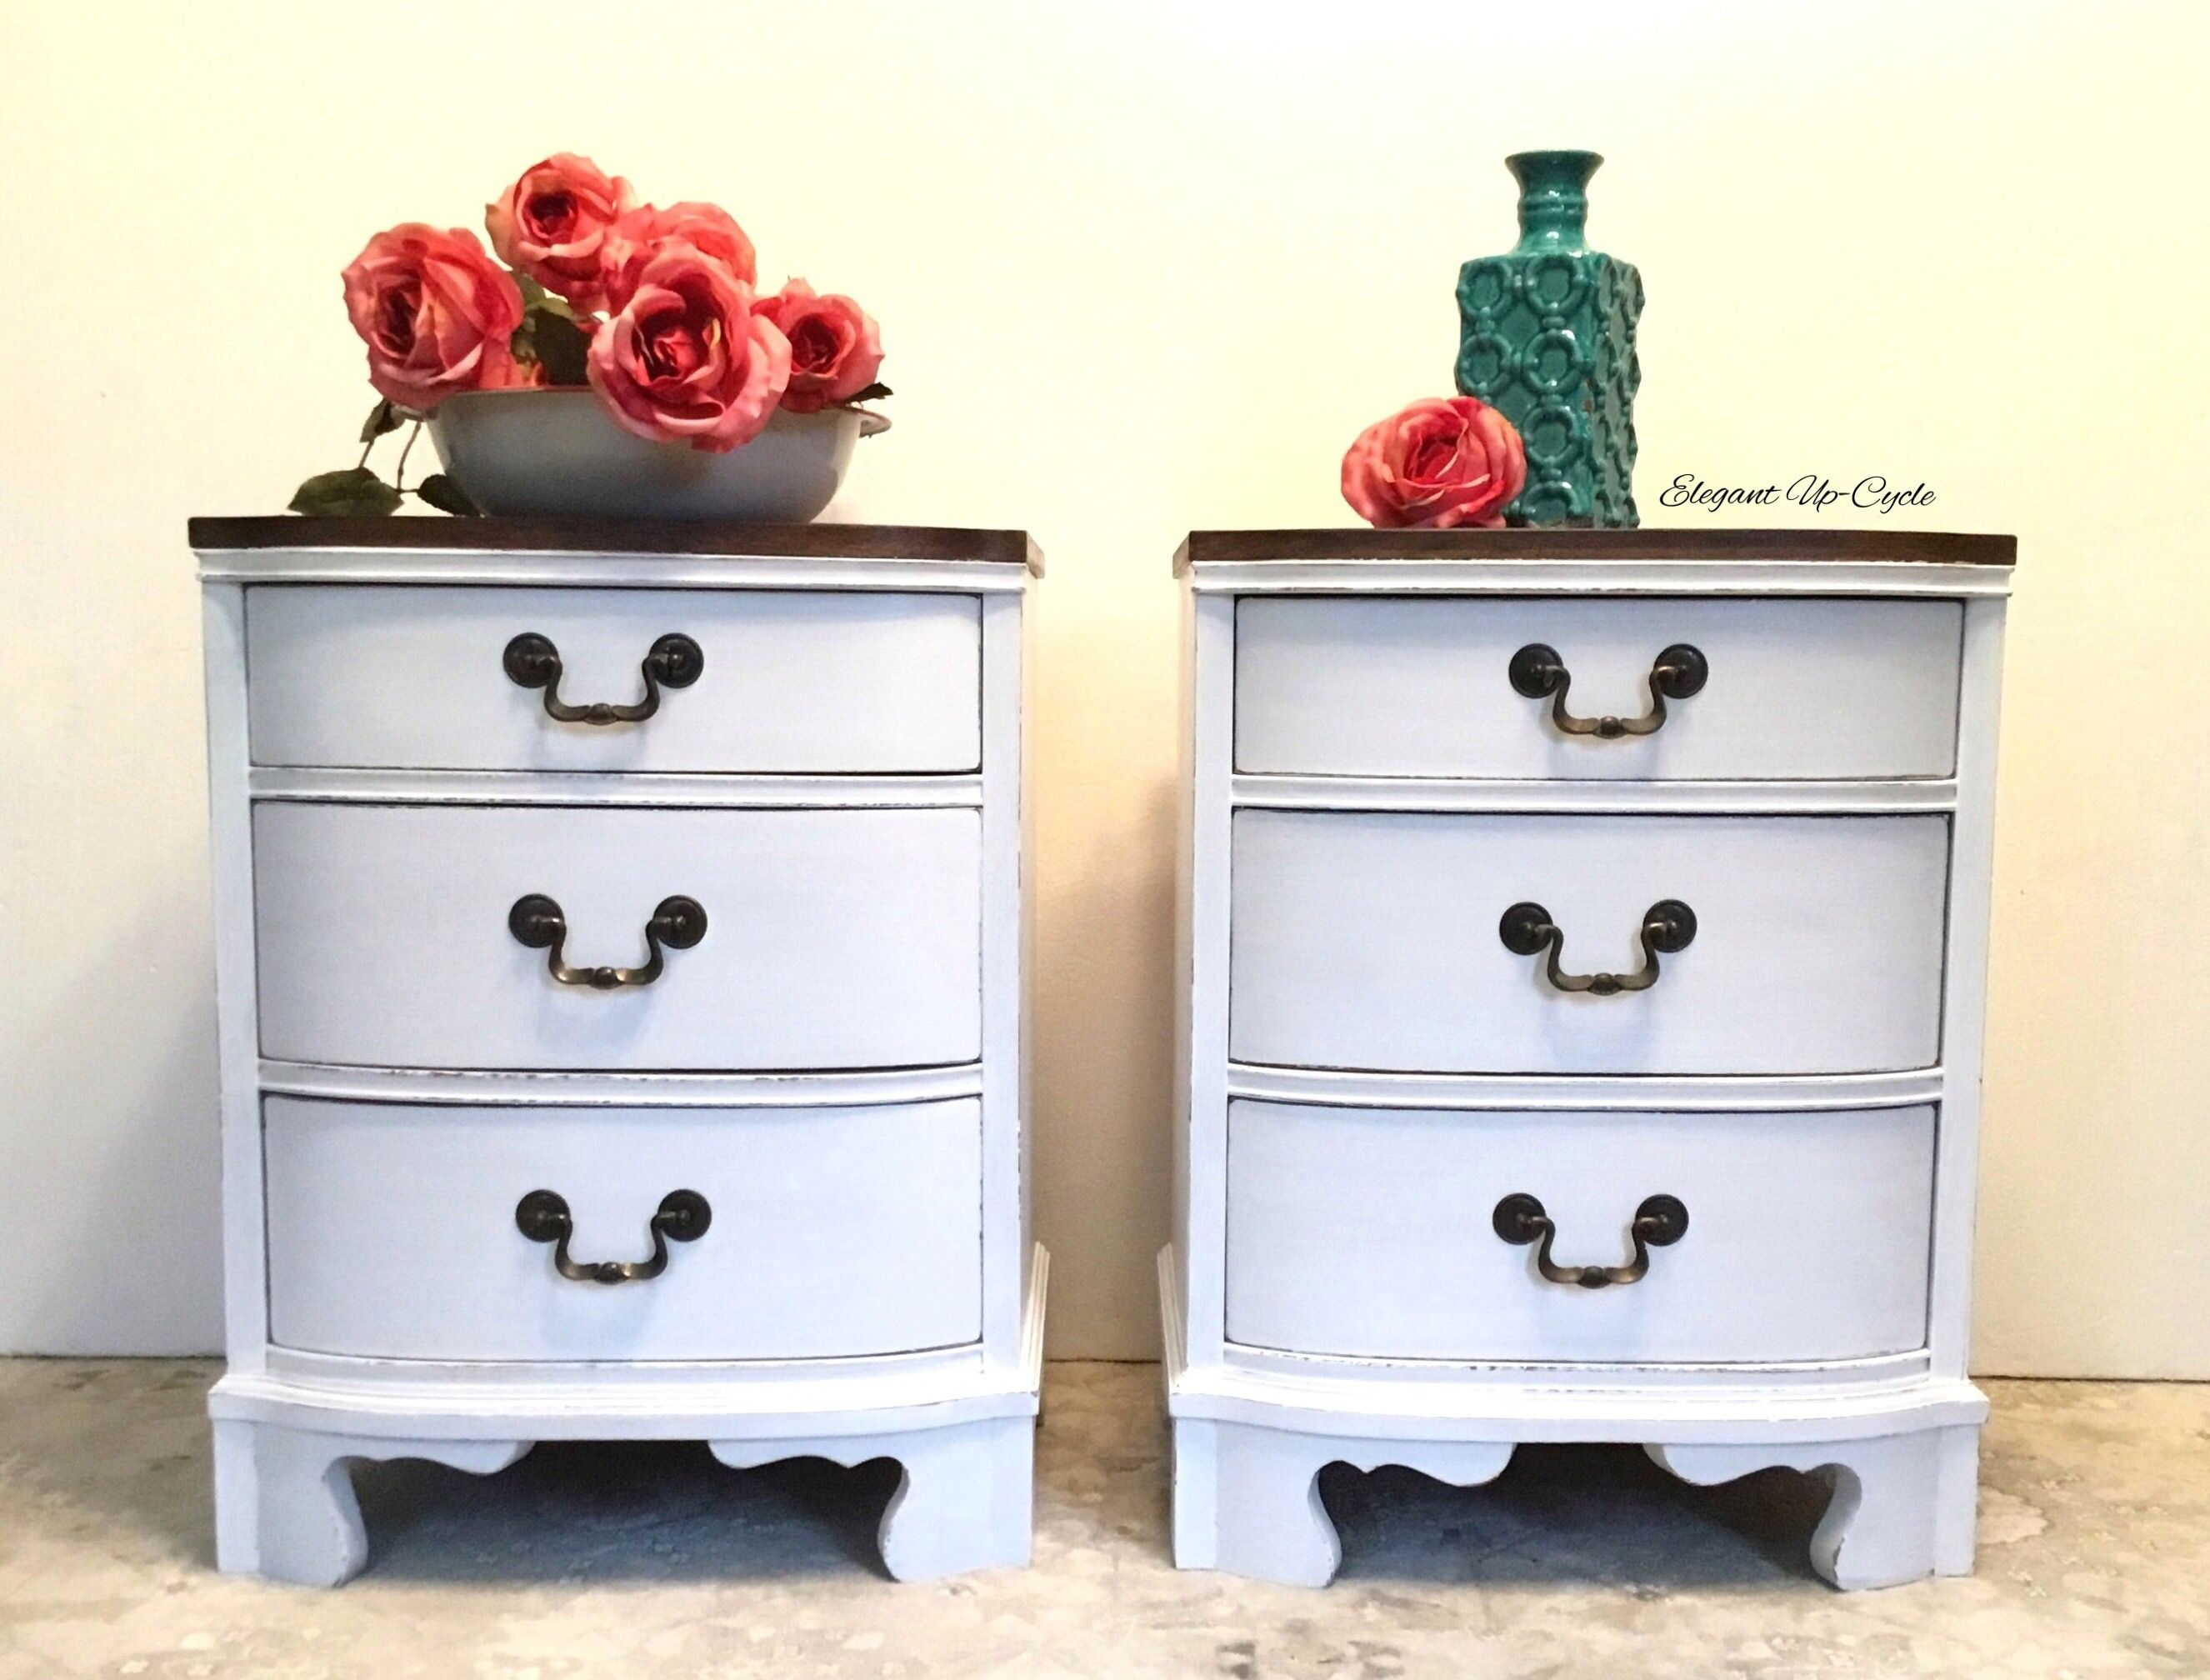 Stunning Pair Of Solid Wood Nightstands Painted White And